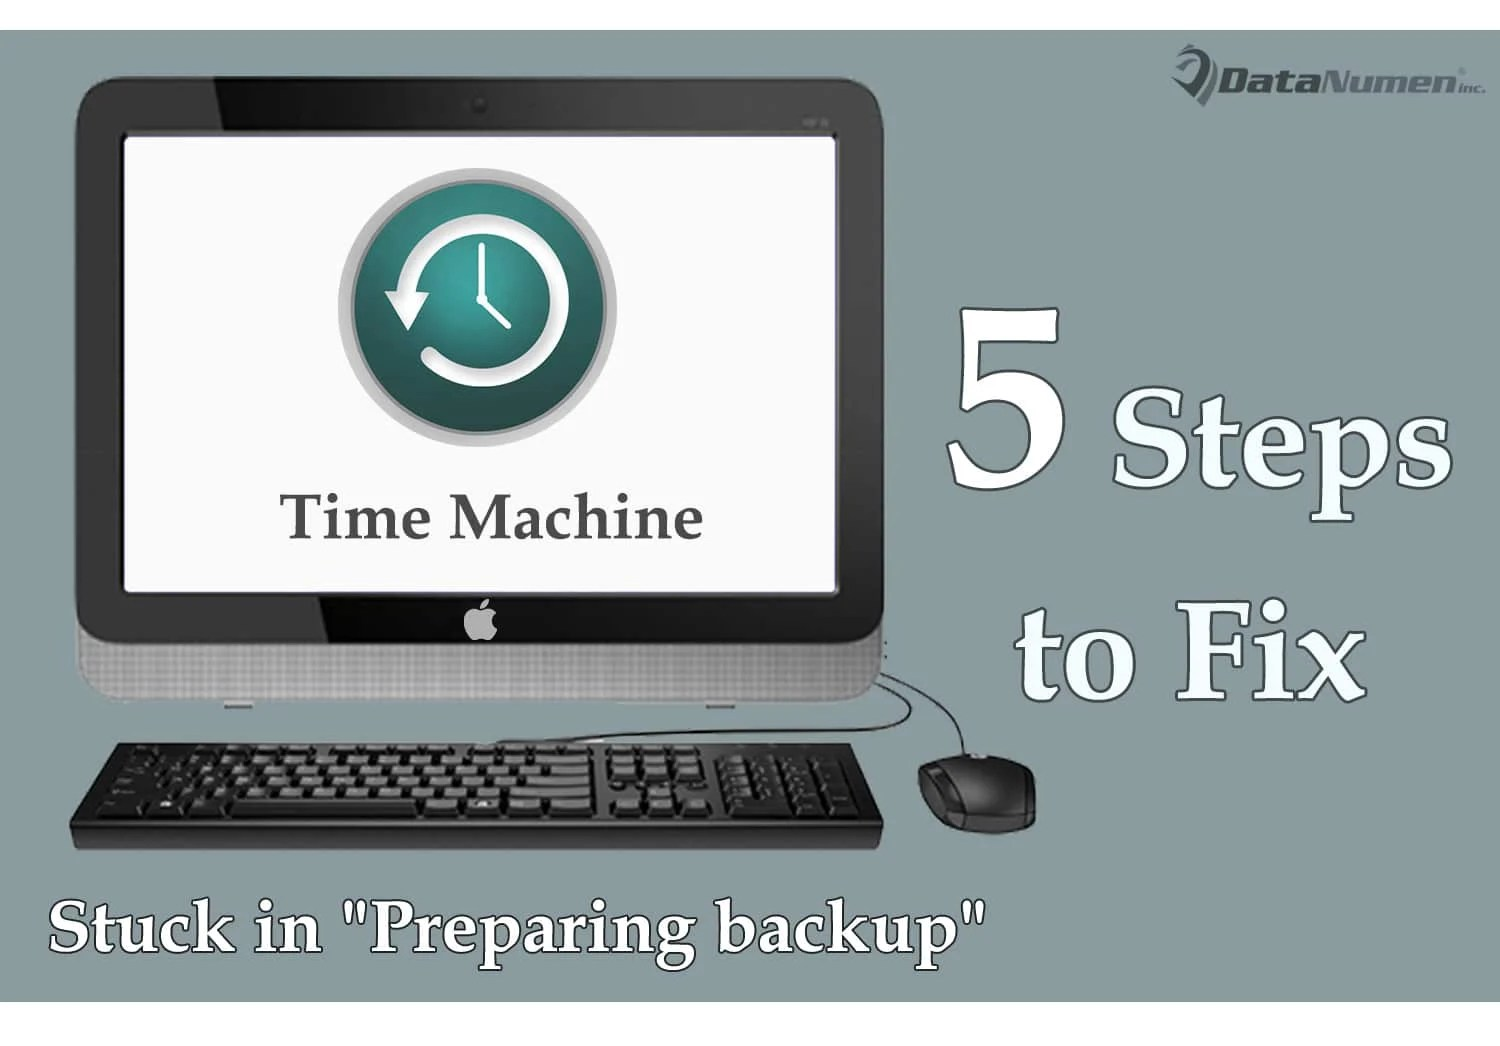 5 Steps To Fix The Issue That Time Machine Is Stuck In